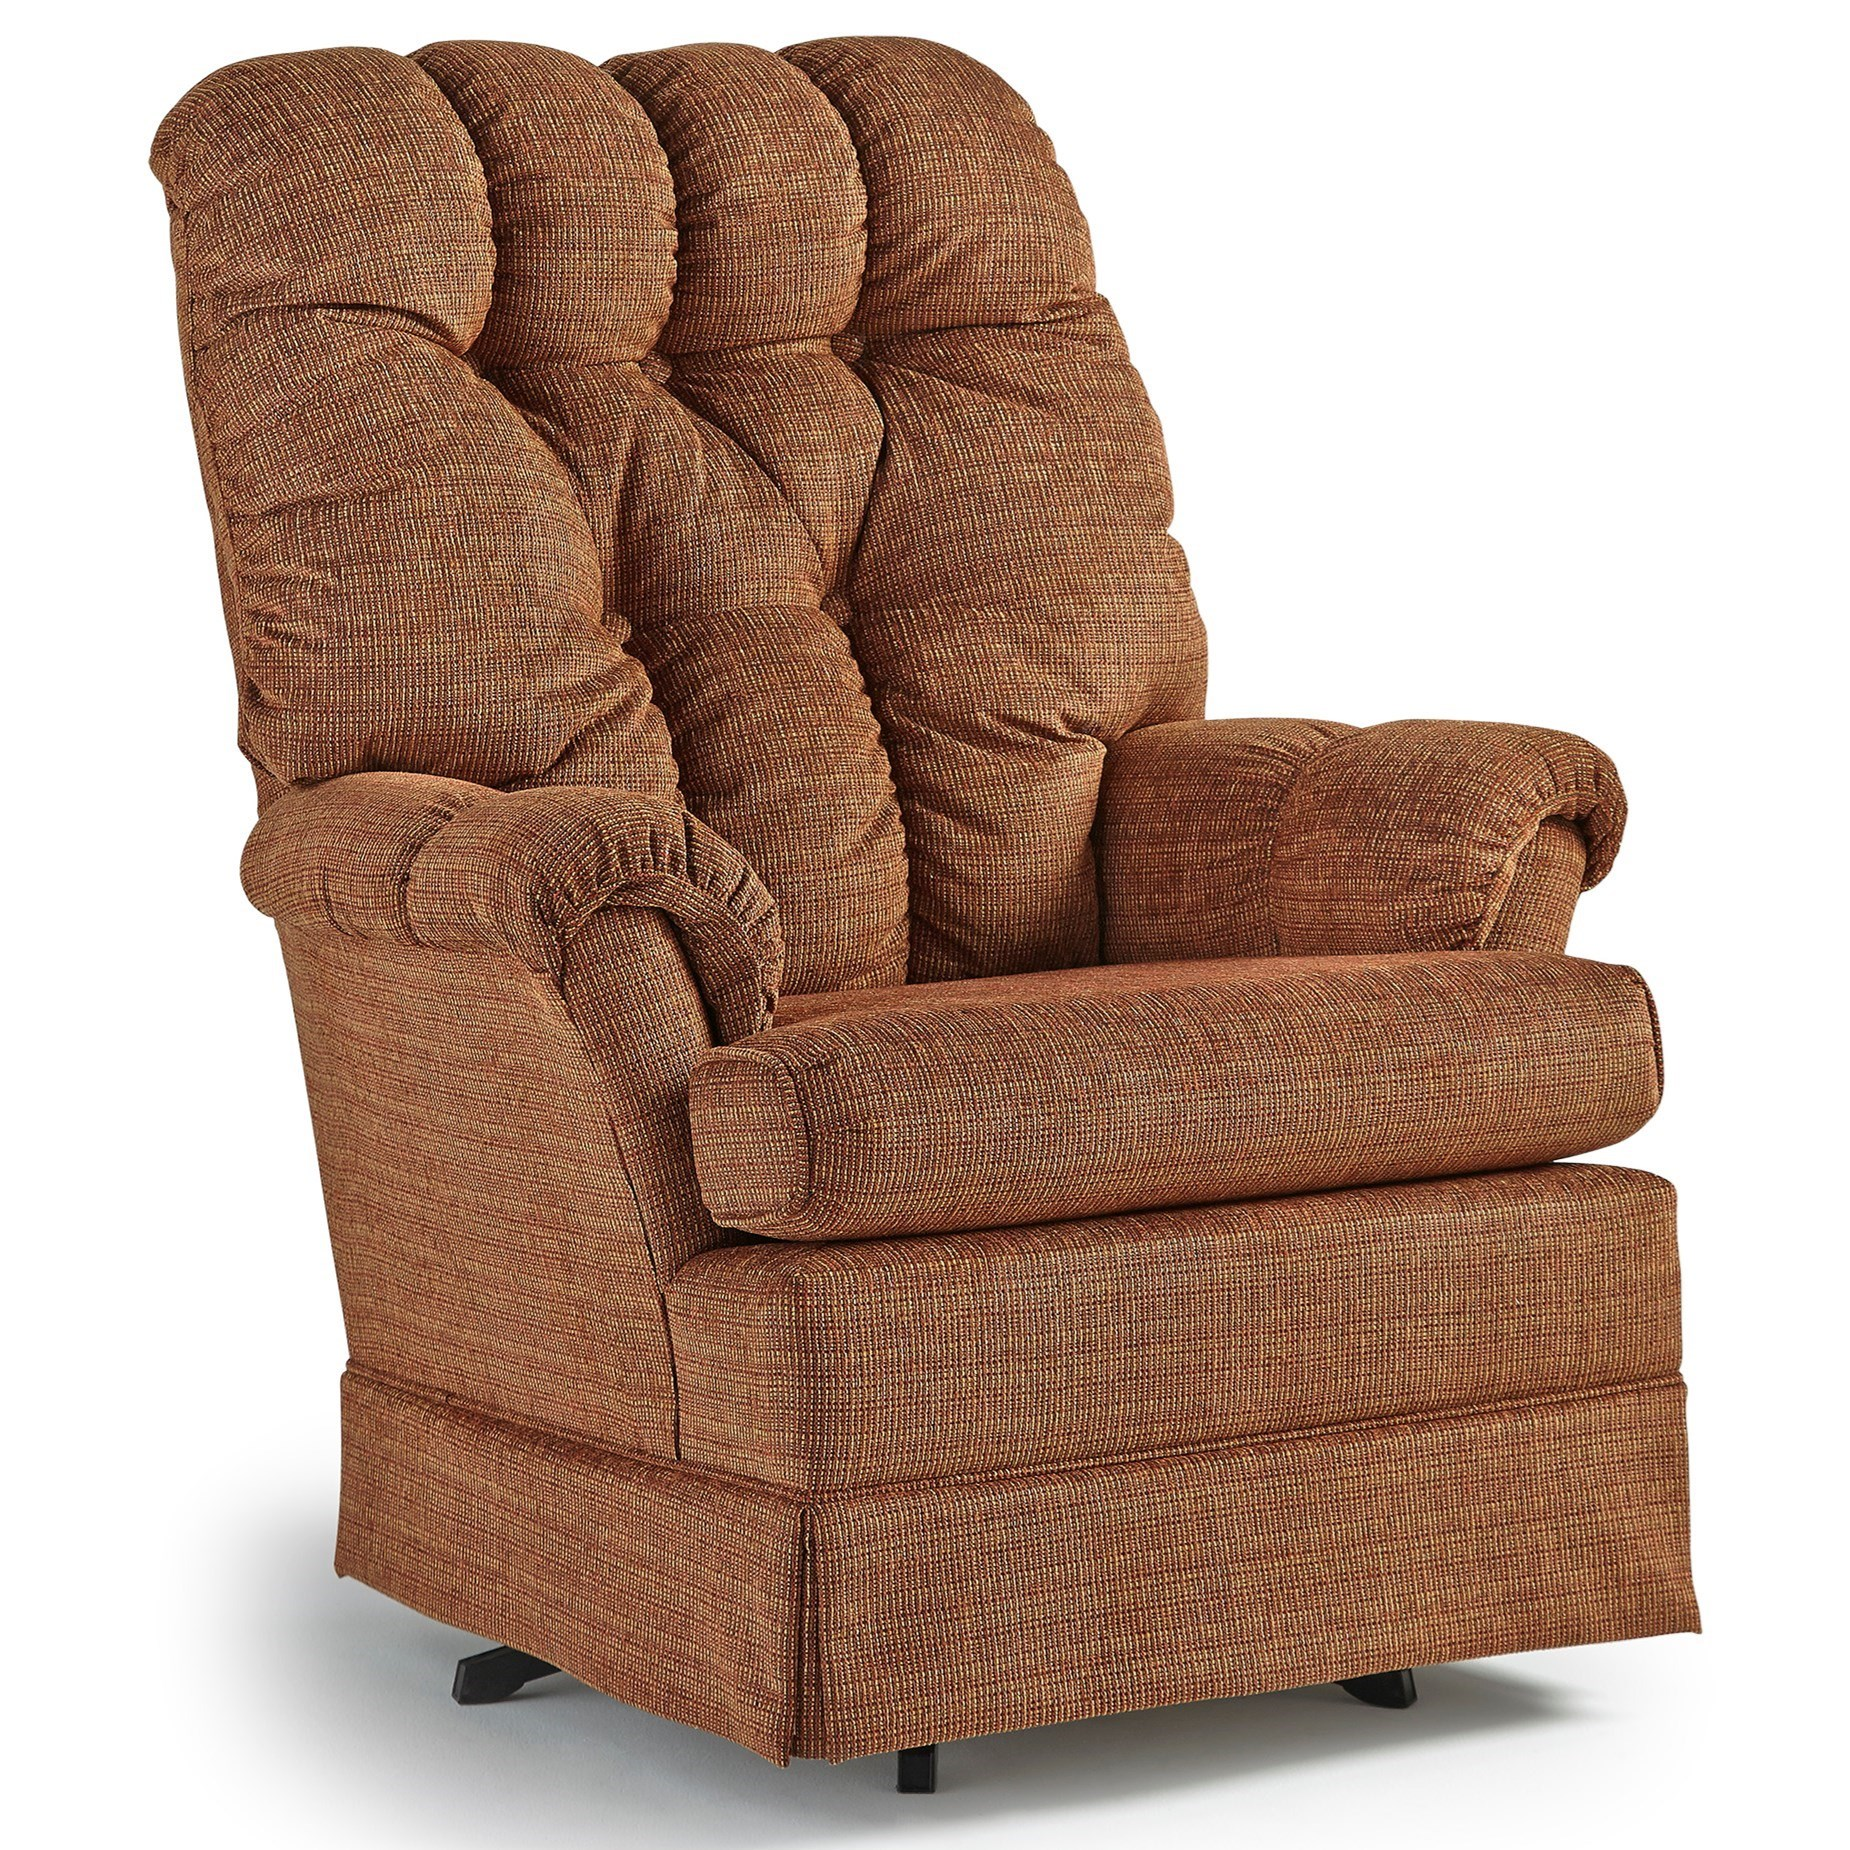 Swivel Rocker Chair Best Home Furnishings Chairs Swivel Glide 1939 Biscay